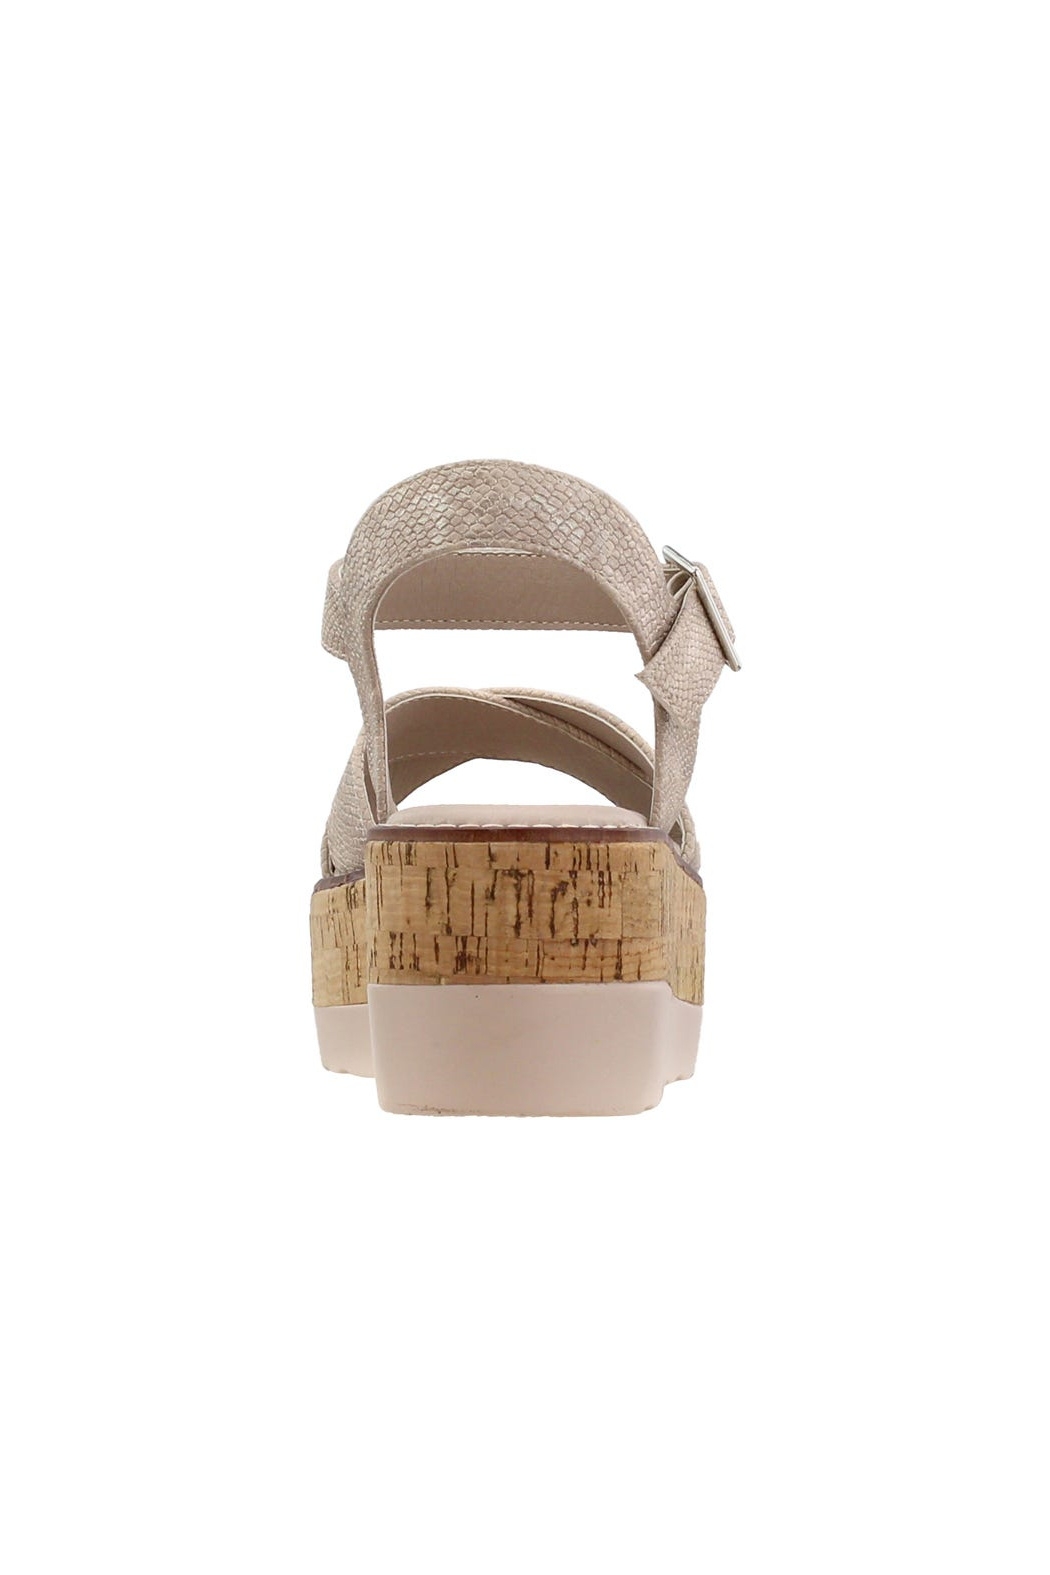 Corky's Shoes Fluffie wedged sandal - Side Cropped Image